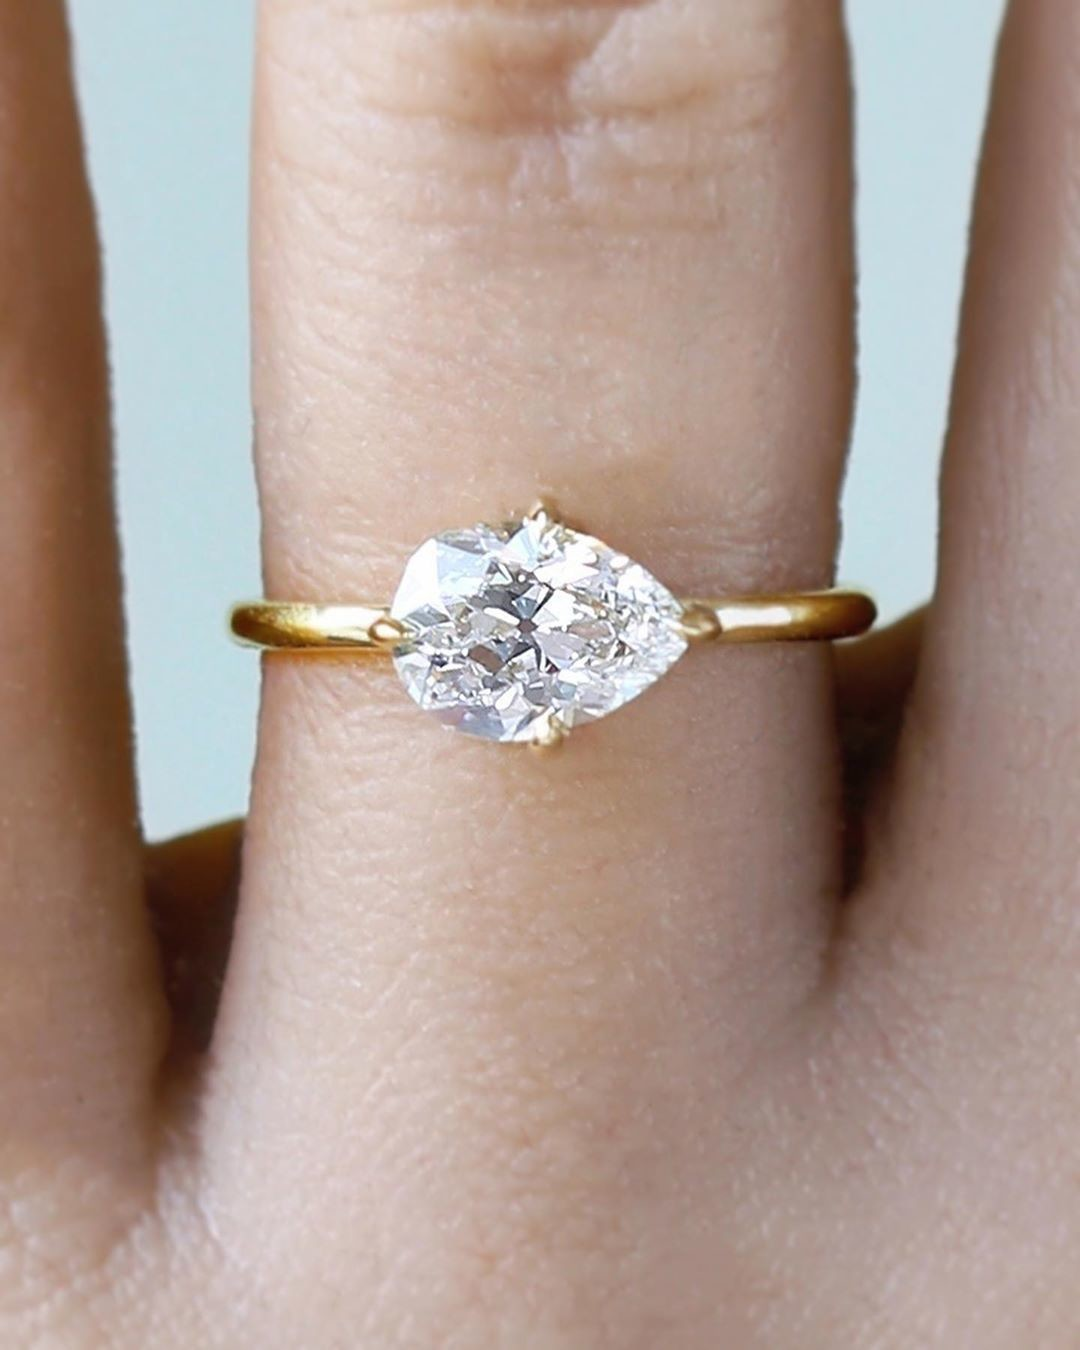 Old Cut Diamond Lovers Rejoice 💫✨ So excited to share our new minimal and low profile 1.38ct old cut pear diamond solitaire. Up